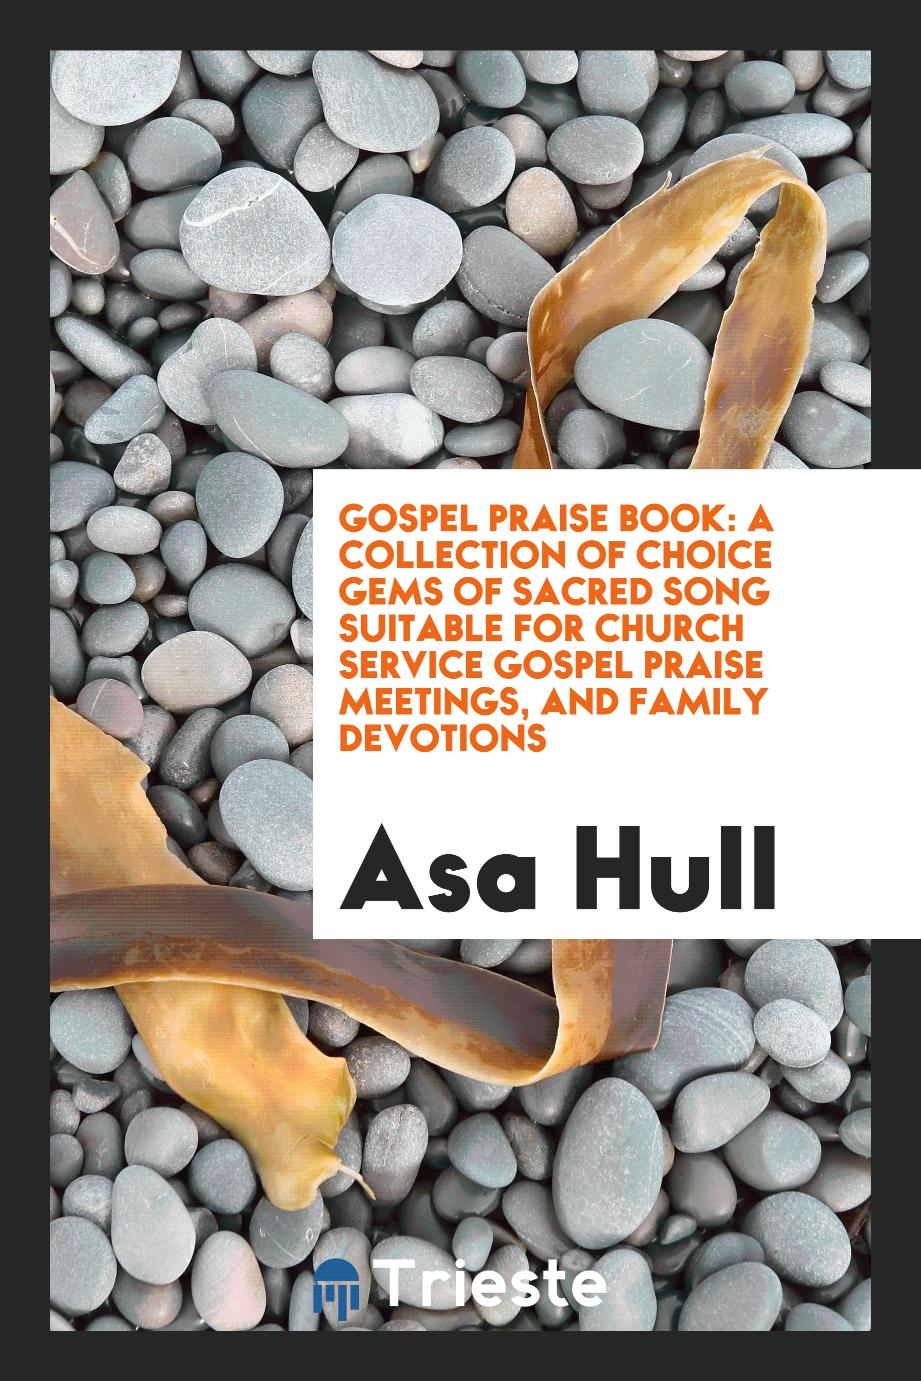 Gospel Praise Book: A Collection of Choice Gems of Sacred Song Suitable for Church Service Gospel Praise Meetings, and Family Devotions